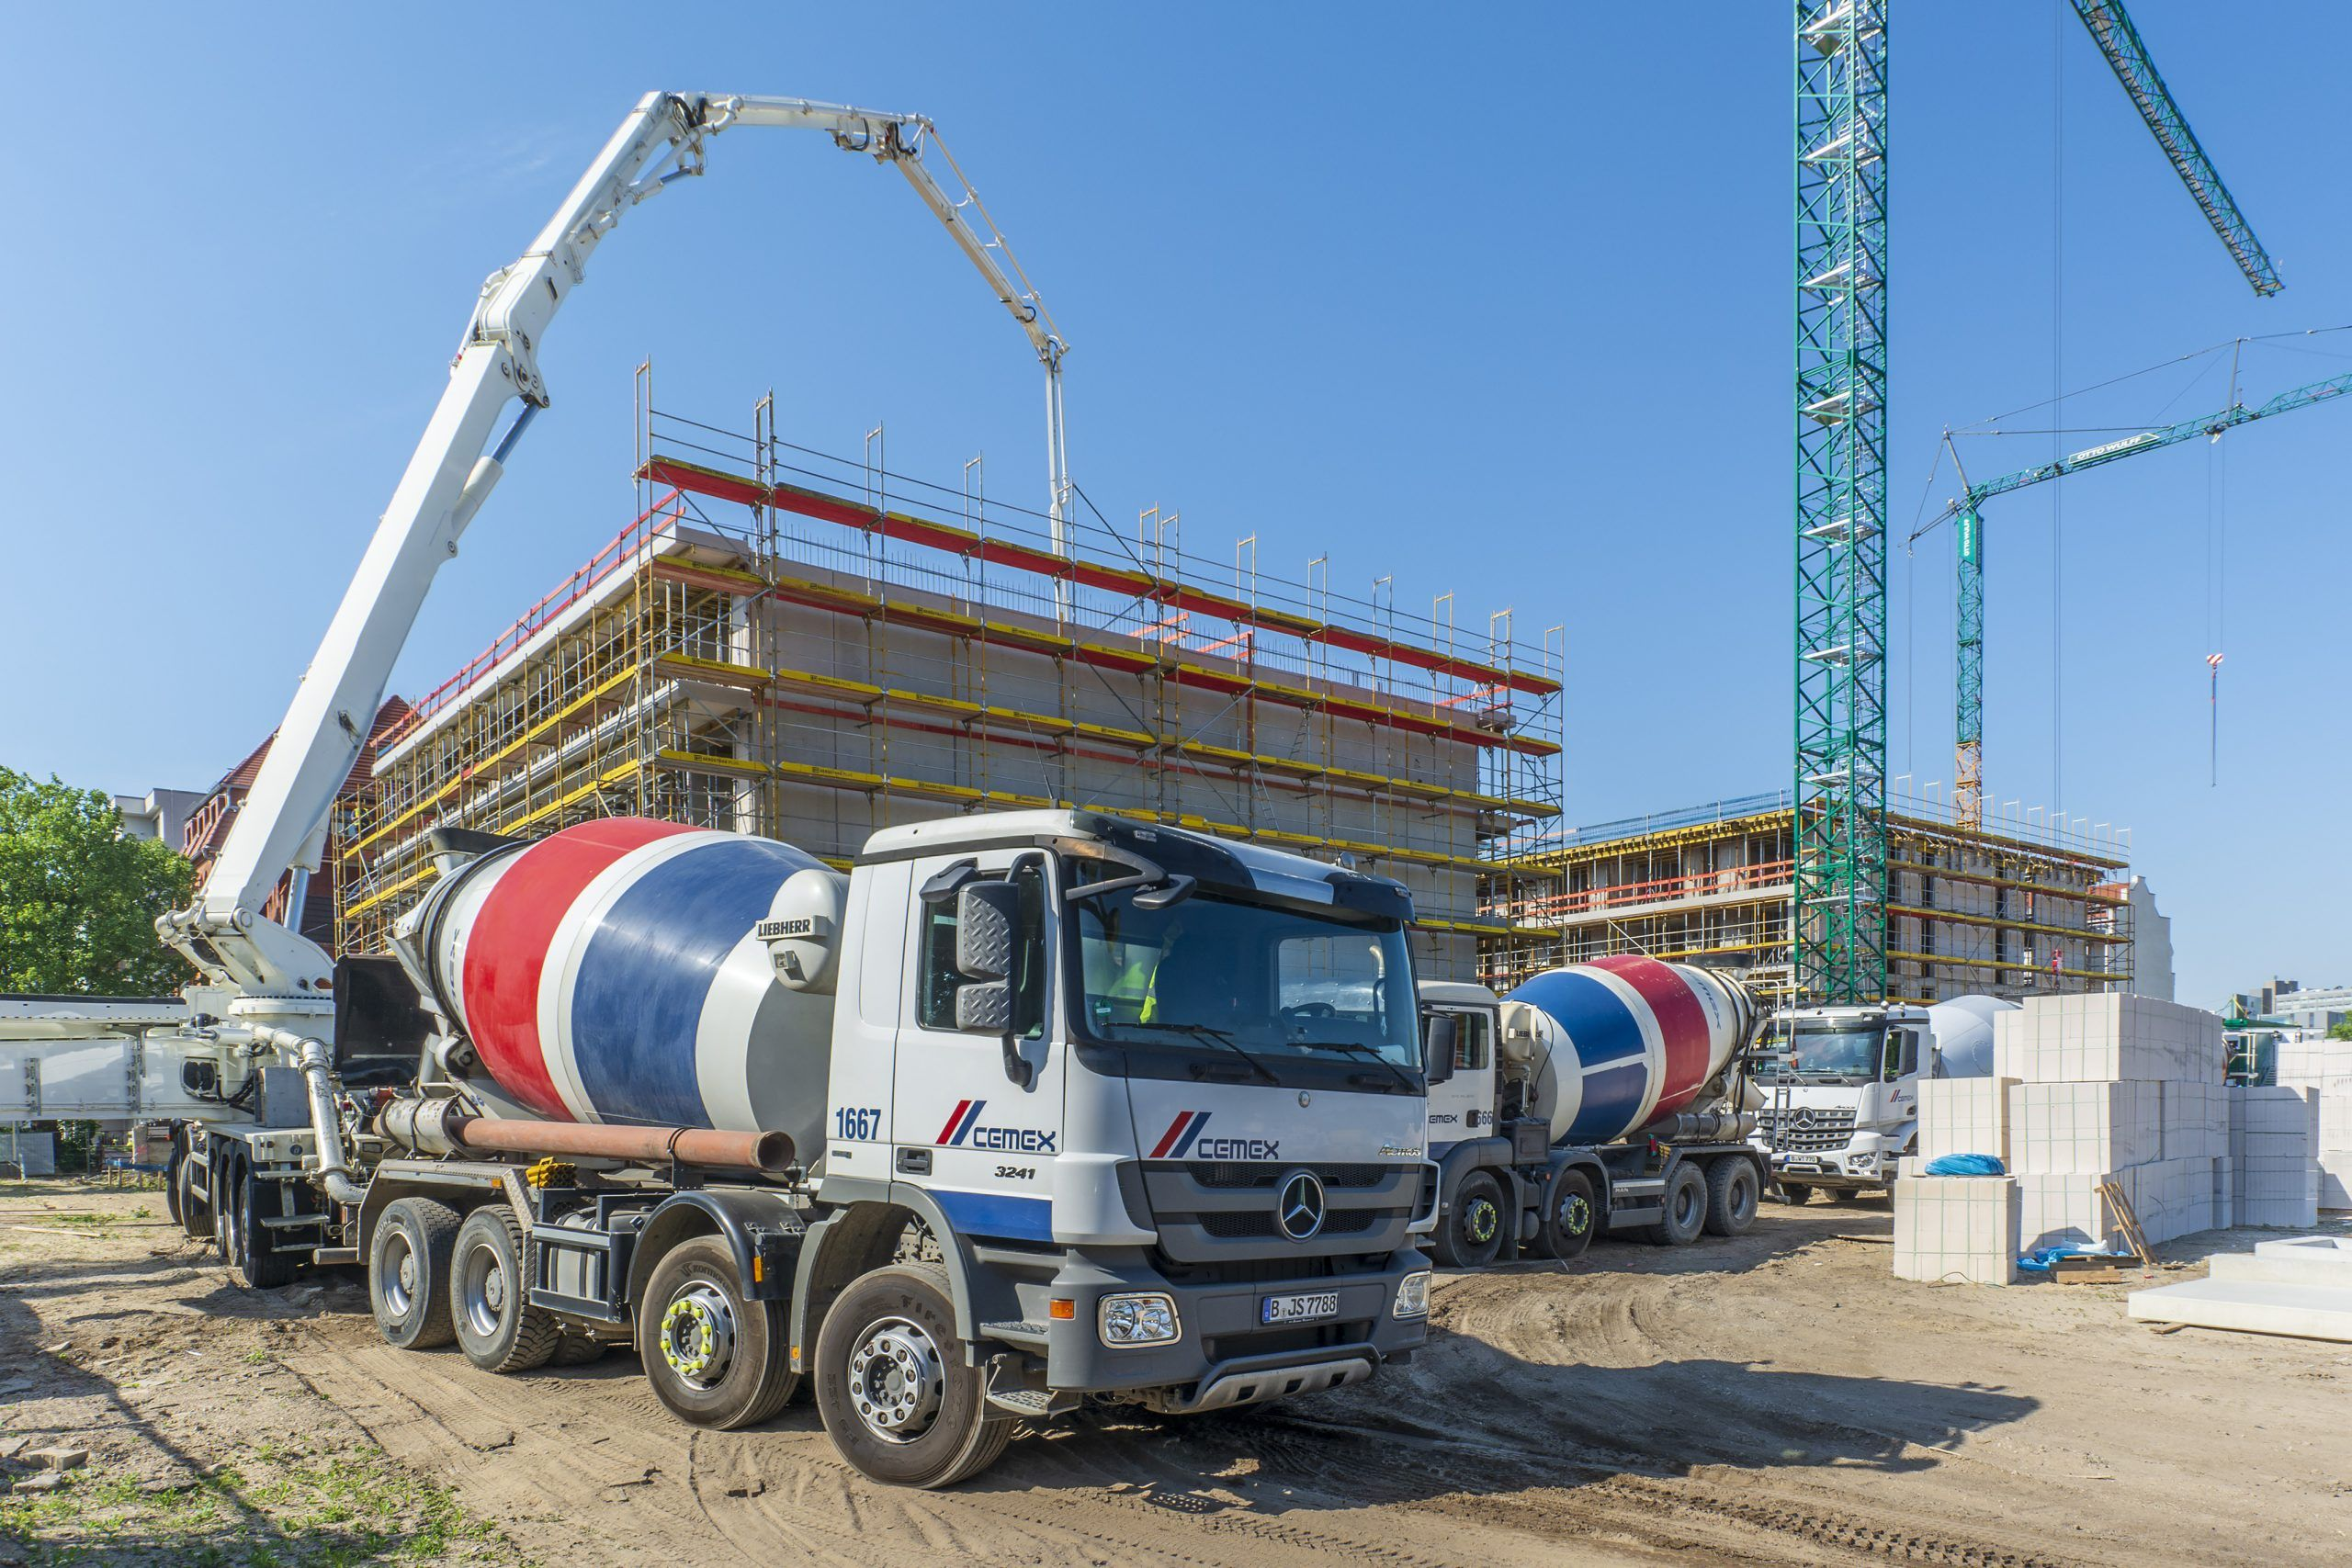 Cemex reported Monday that it closed the previously announced sale of certain UK assets to the Breedon Group for approximately $ 230 million.